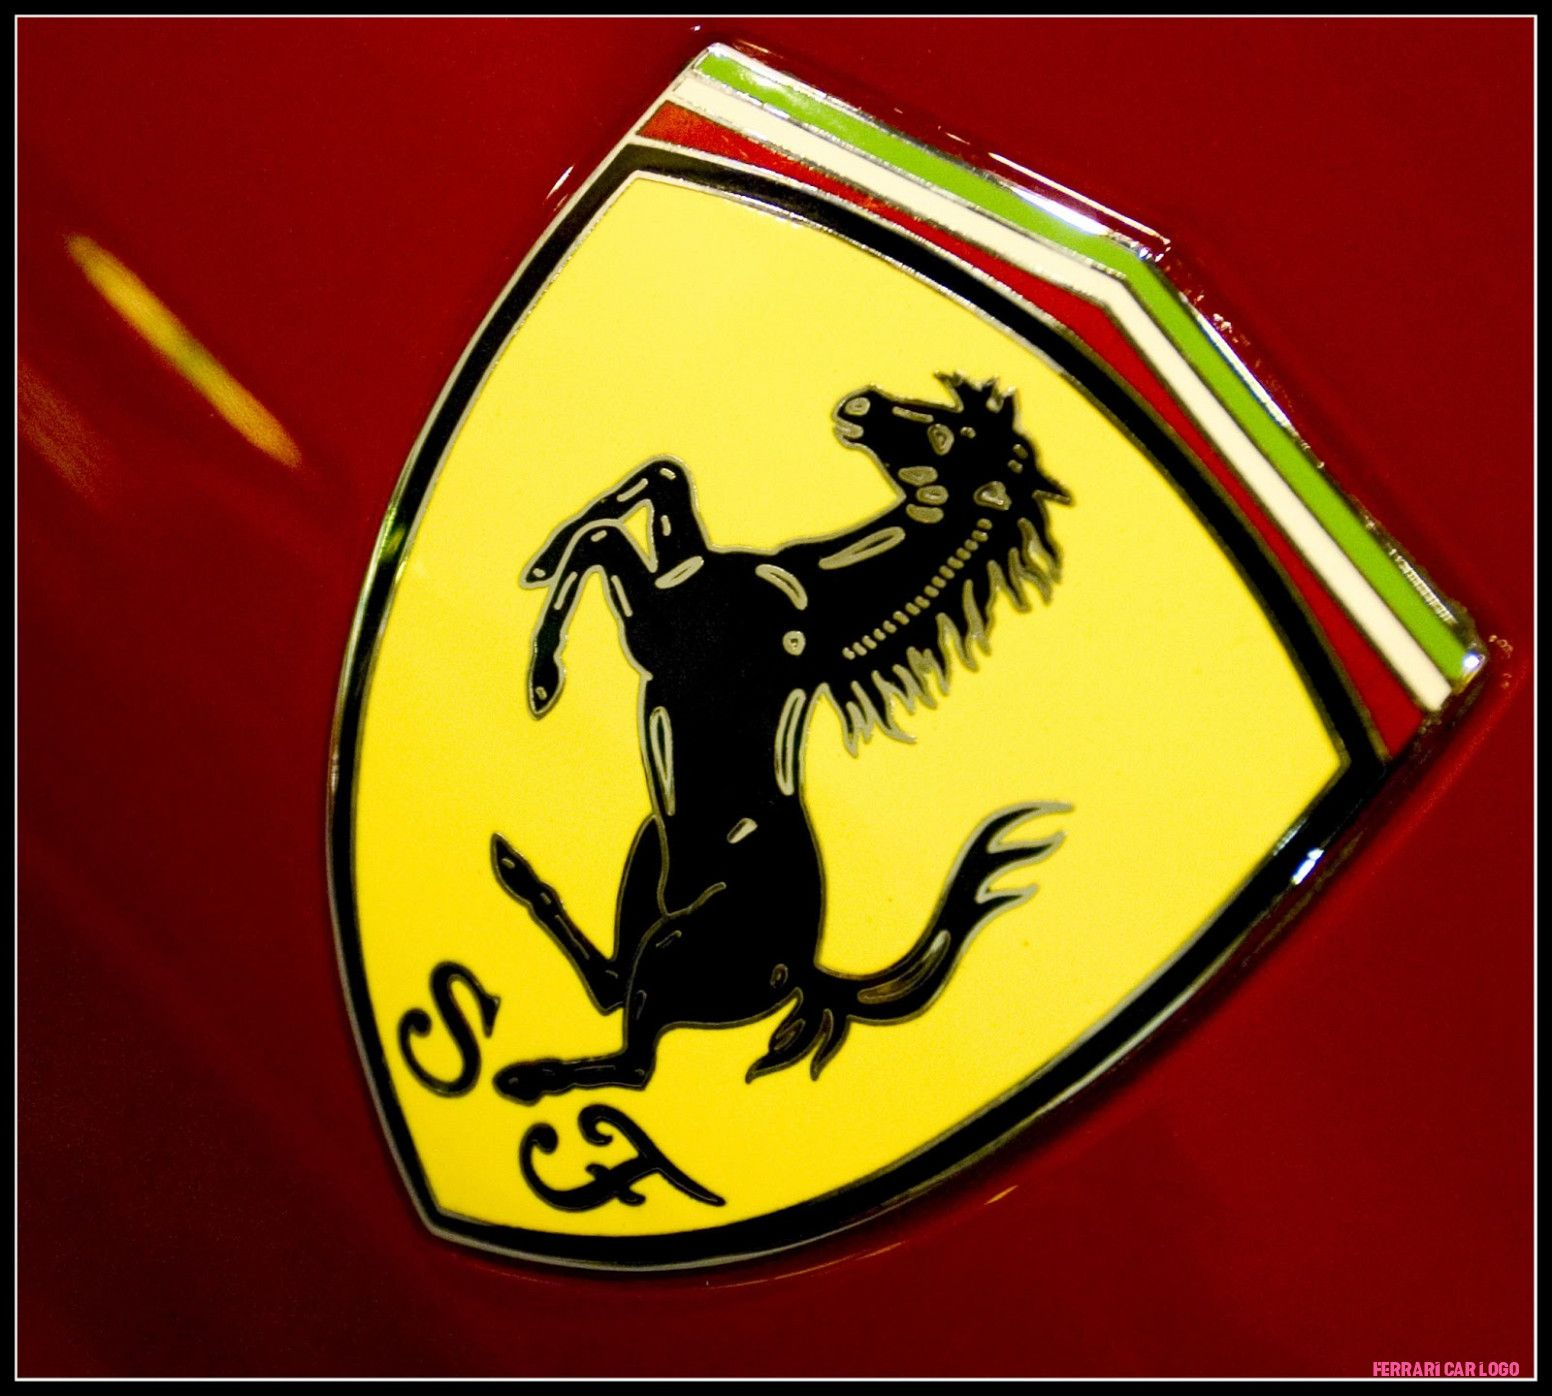 8 Small But Important Things To Observe In Ferrari Car